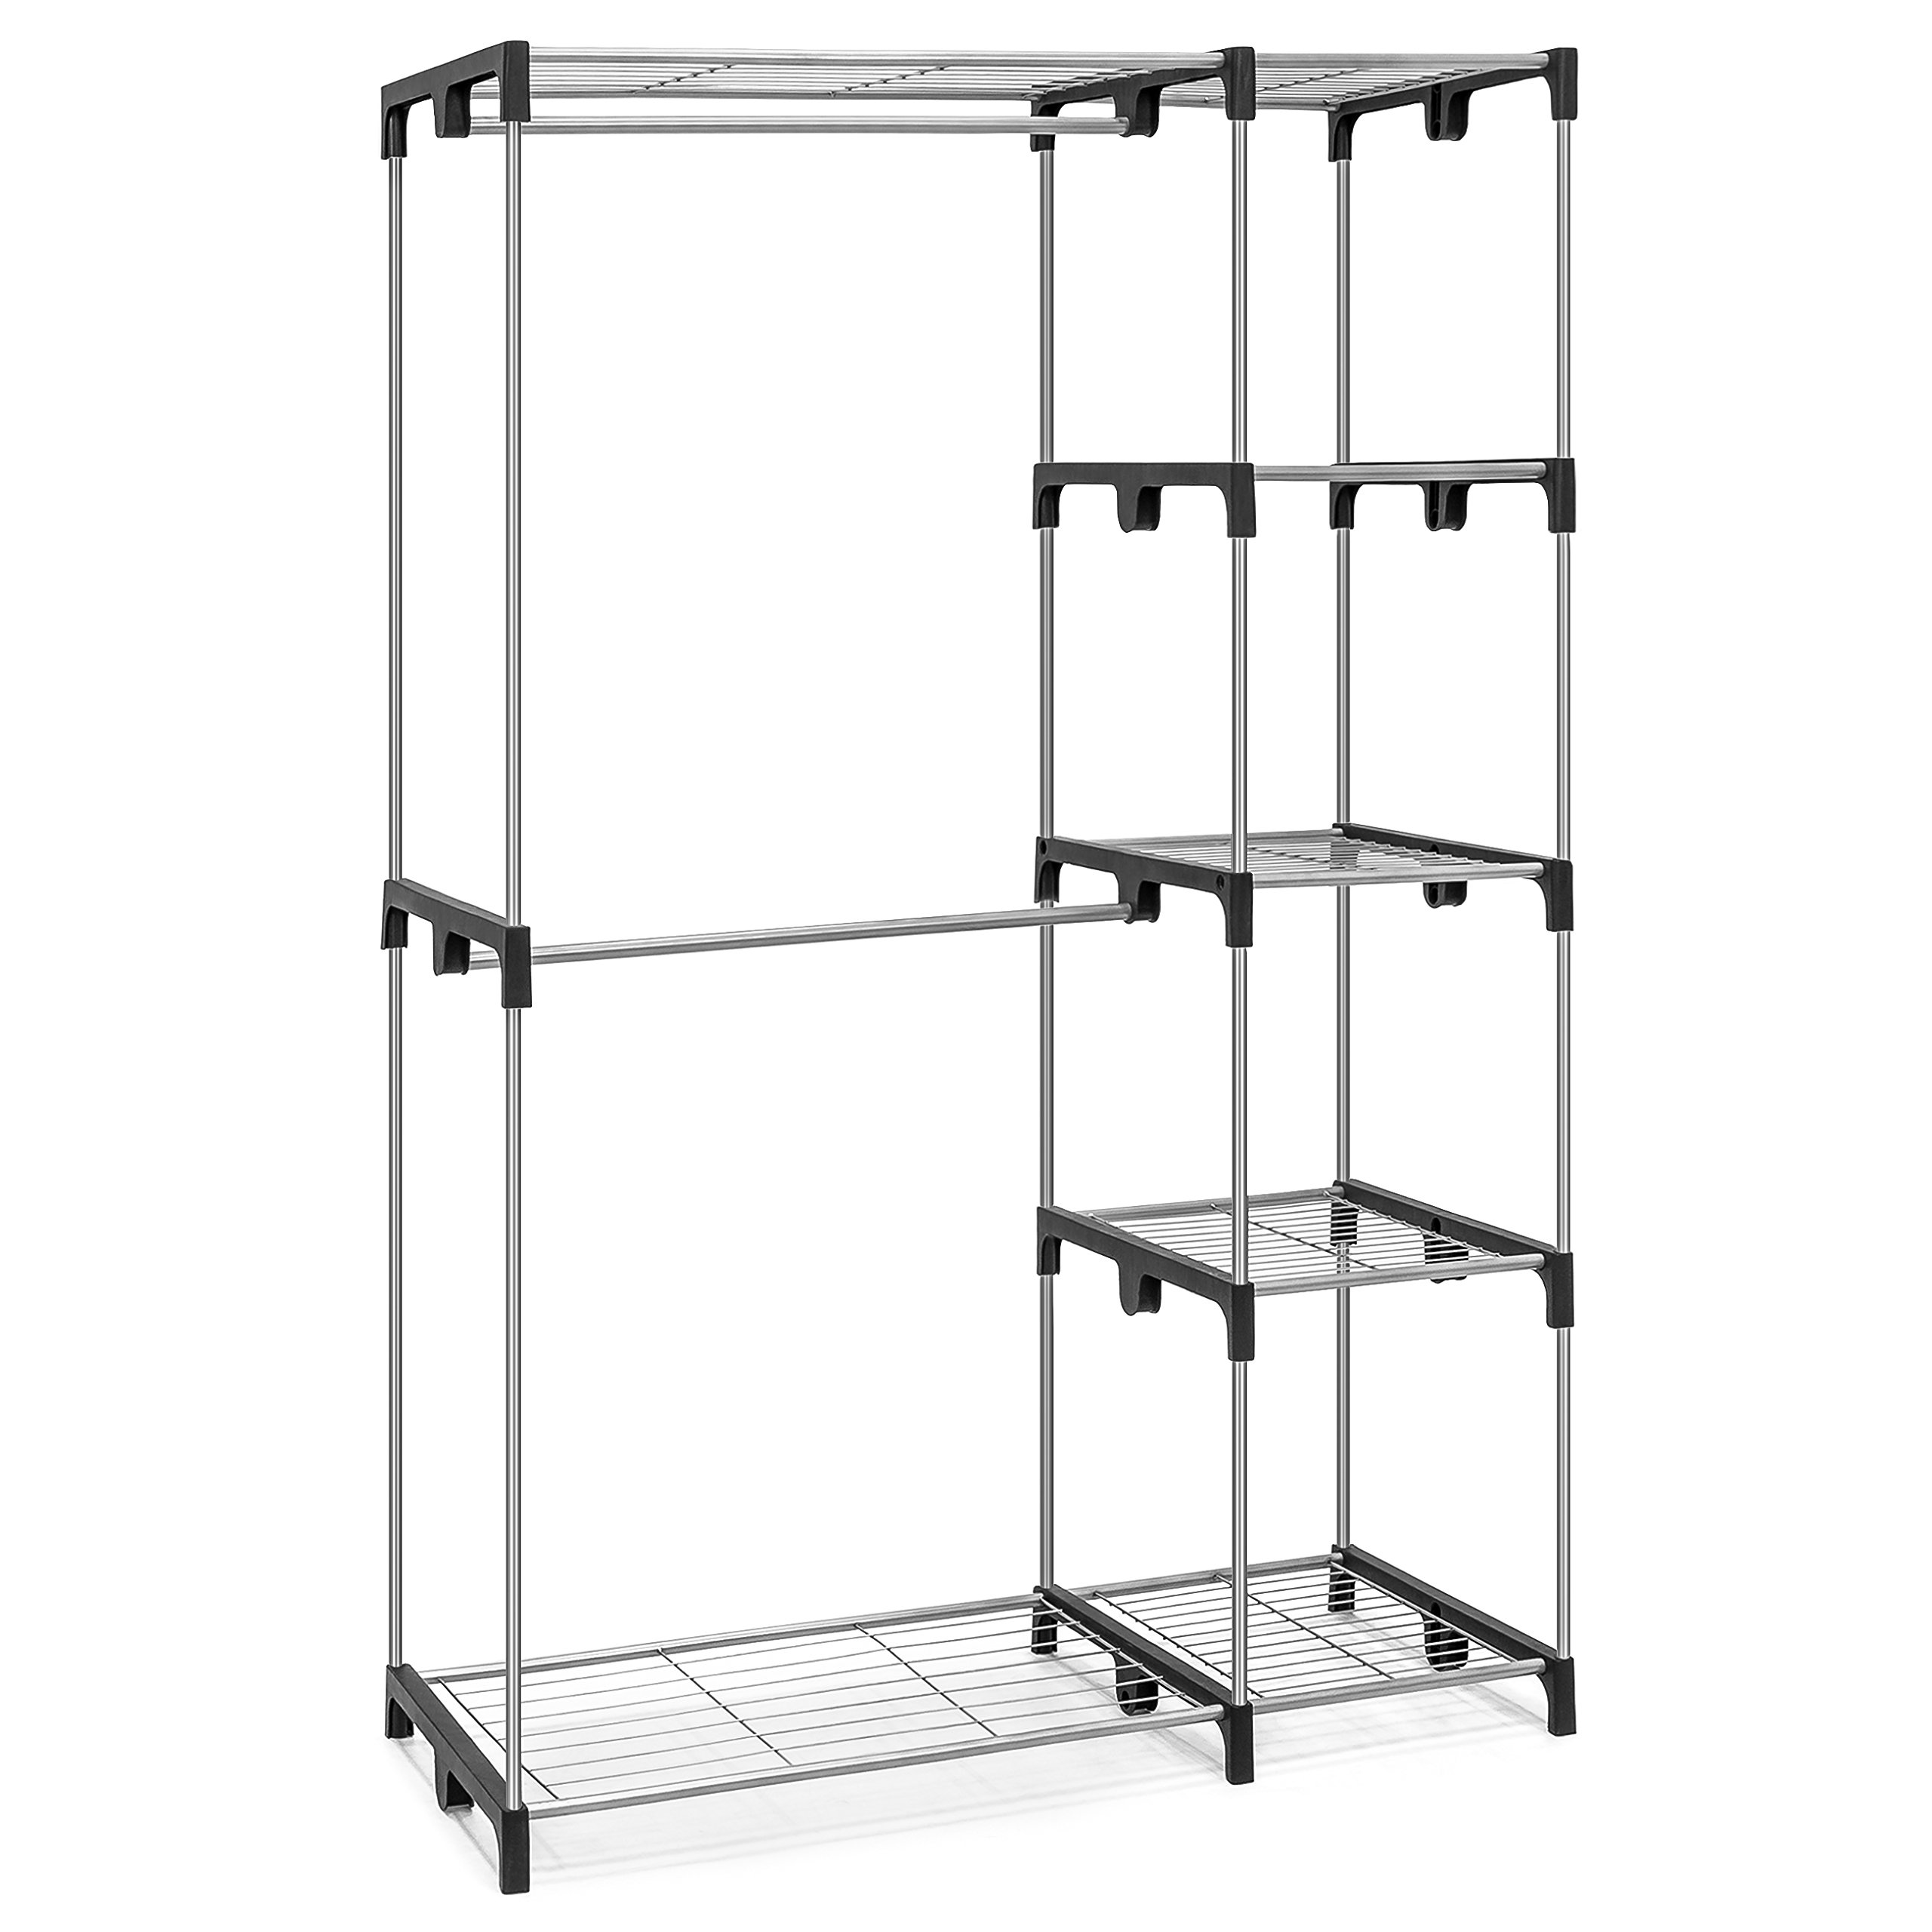 Best Choice Products 68'' Double Rod Freestanding Closet Storage Organizer (Silver)